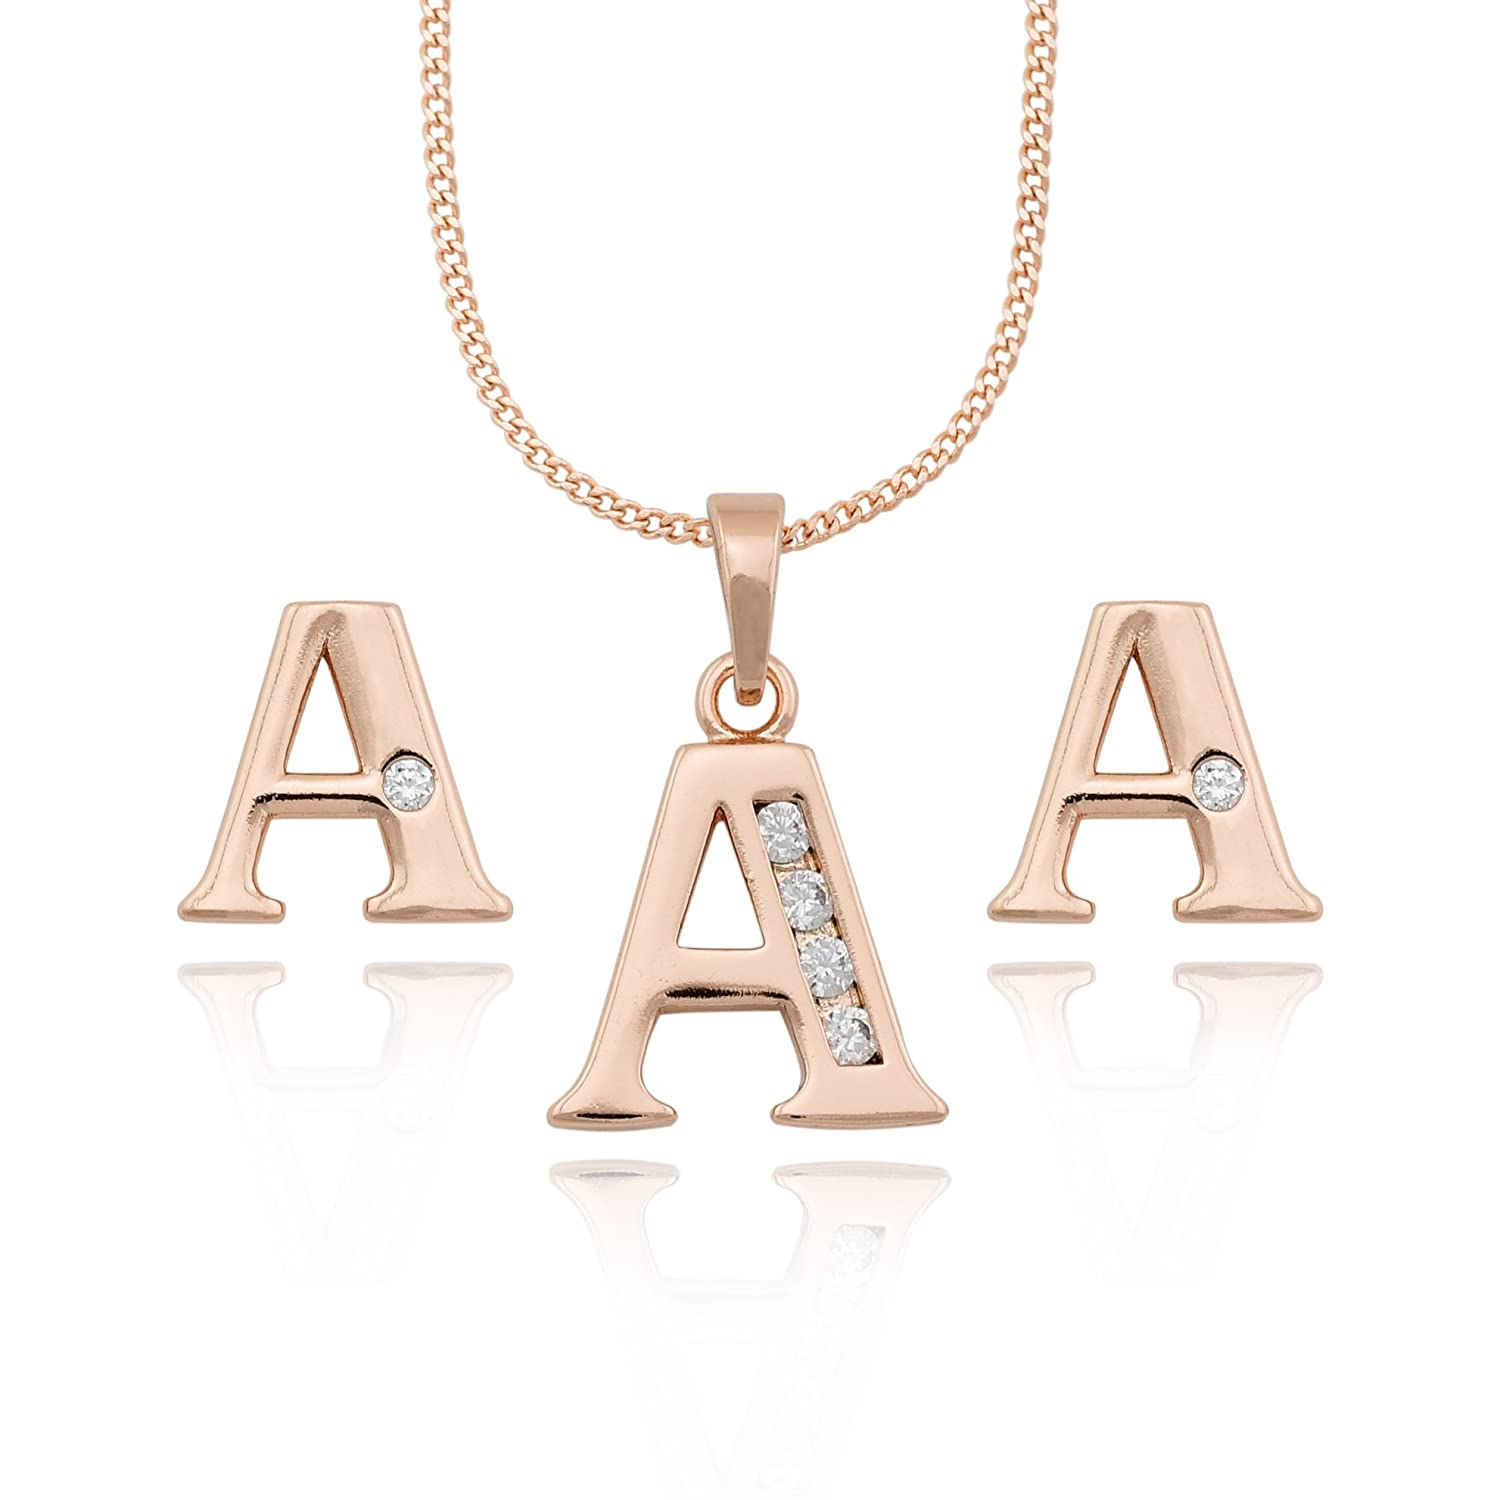 d412152c4781 Amazon.com  Rose Gold Plated 18K Initial A Set Necklace Pendant Stud  Earrings CZ Cubic Zirconia by Olivia Star Jewelry  Jewelry